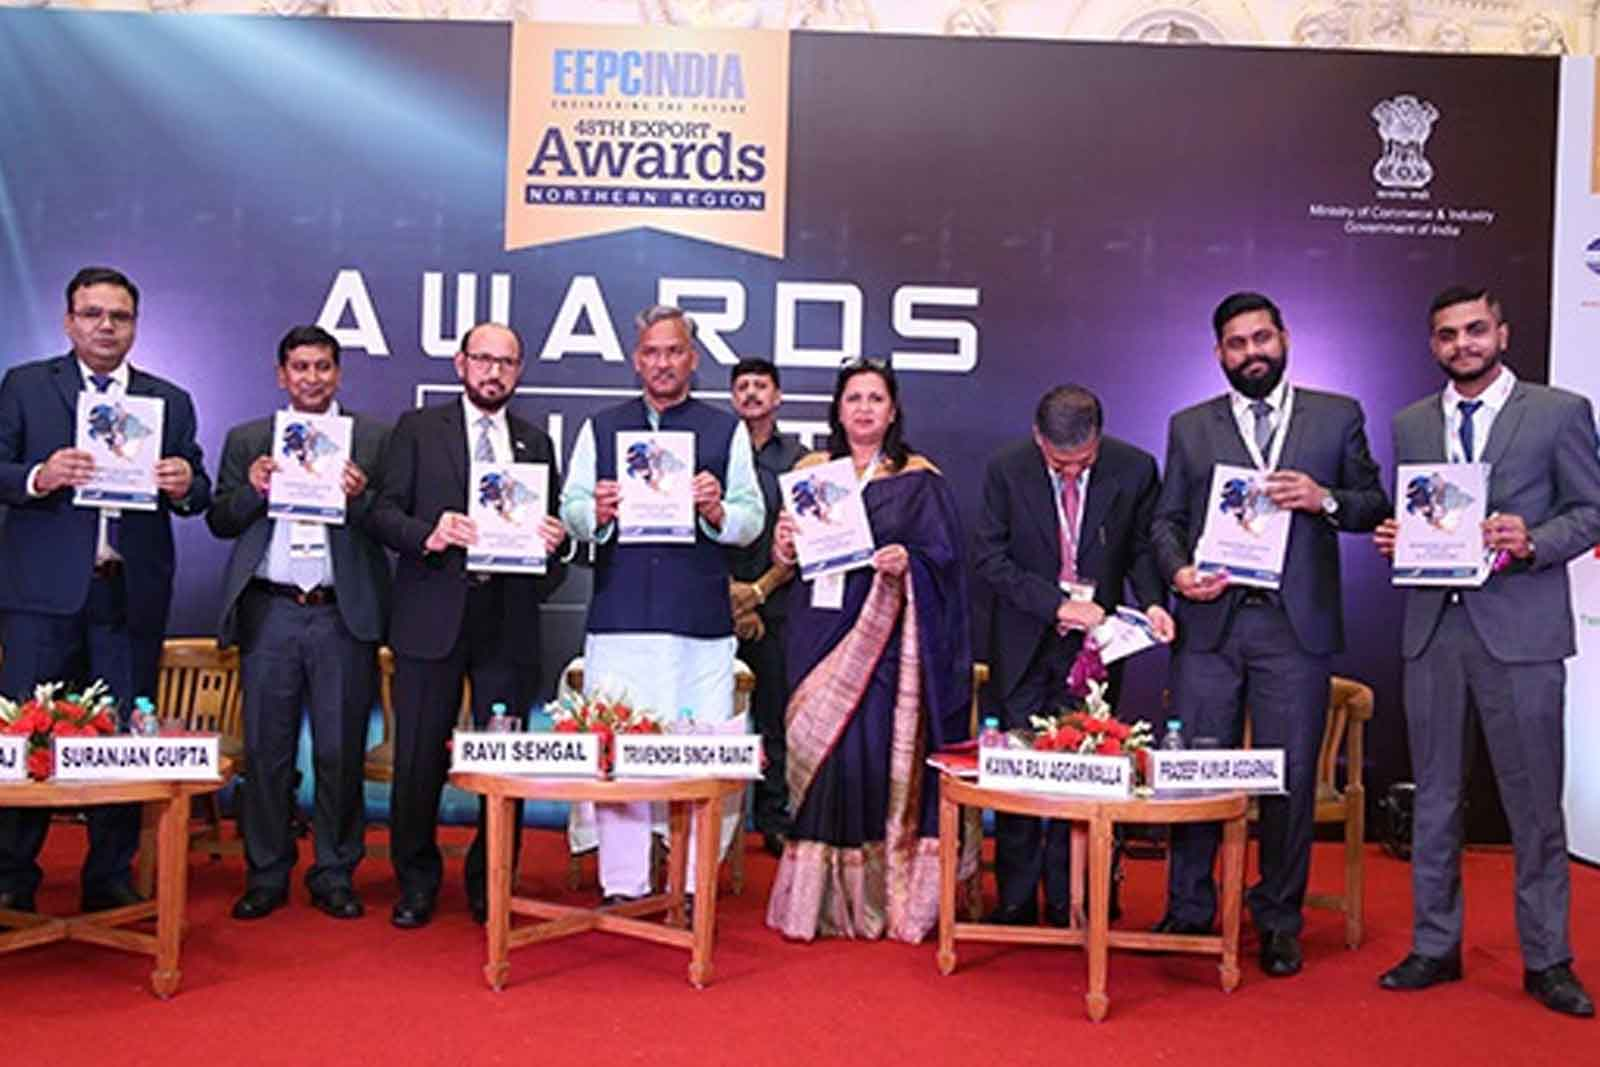 Mr. Trivendra Singh Rawat, Hon`ble Chief Minister of Uttarakhand, Mr. Rakesh Suraj (EEPC India), Ms. Kamna Raj Aggarwalla, (EEPC India), Mr. Mahesh Bendre (TechSci Research), Mr. Rishabh Pathela (TechSci Research) and others.